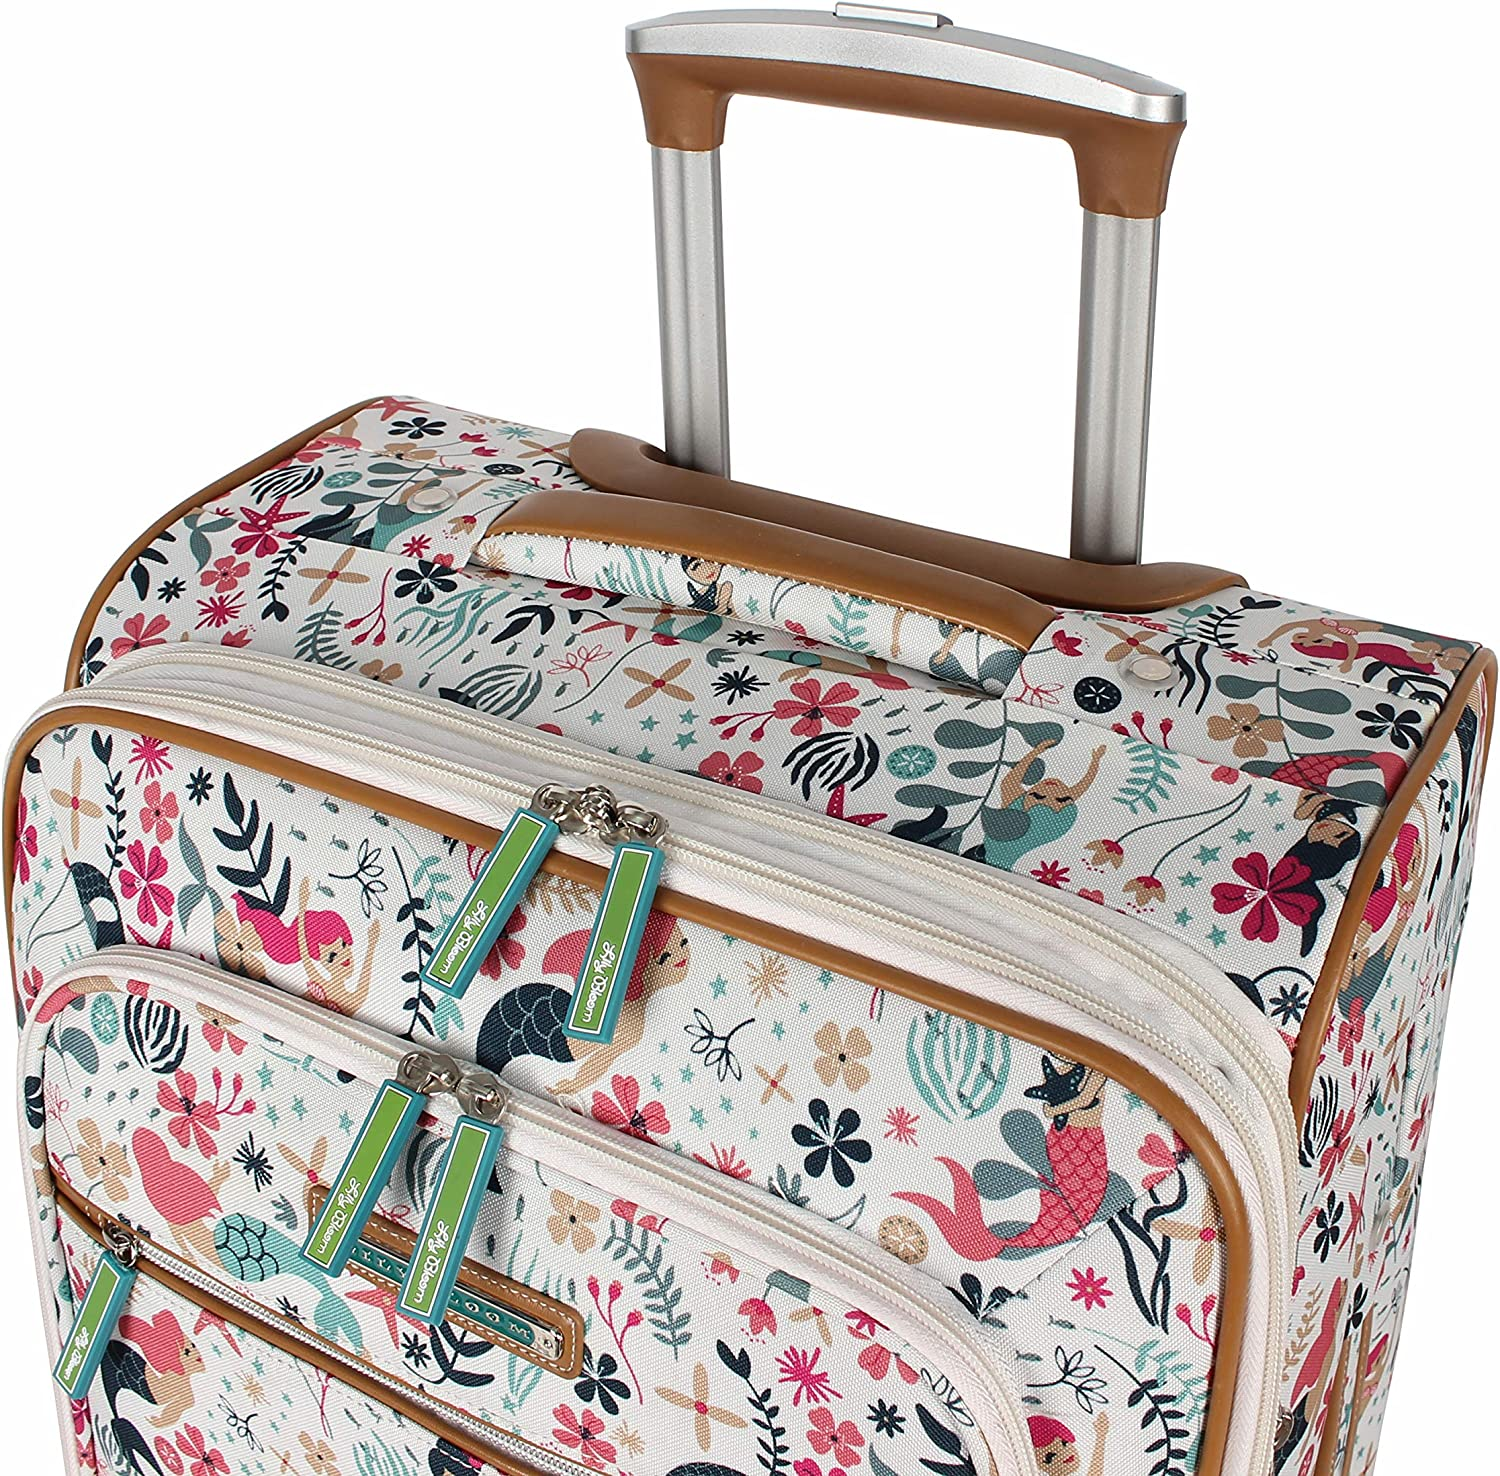 Lily Bloom Luggage 24 Expandable Design Pattern Suitcase With Spinner Wheels For Woman 24in, Aquarium Life